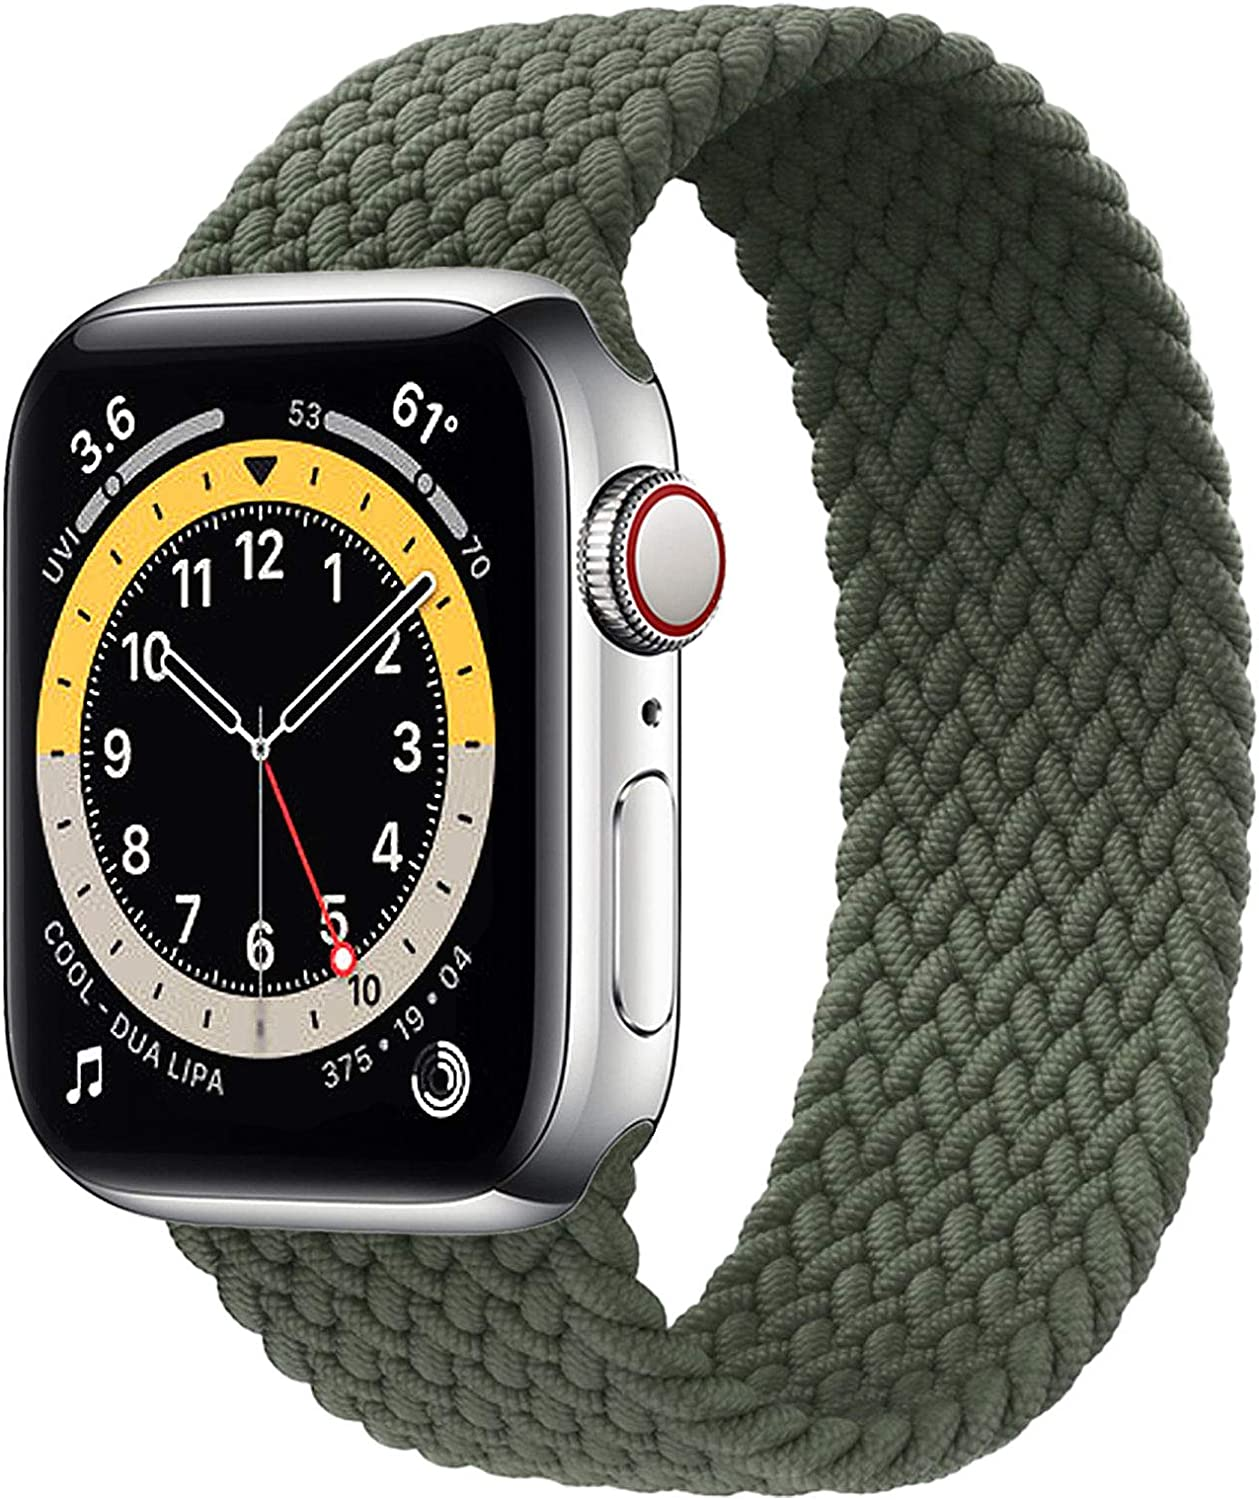 WAAILU Solo Loop Braided Band Woven Compatible for Apple Watch SE Series 6 40mm 44mm Compatible for Iwatch 5/4/3/2/1 38mm 42mm-(Green-38/40-6 )